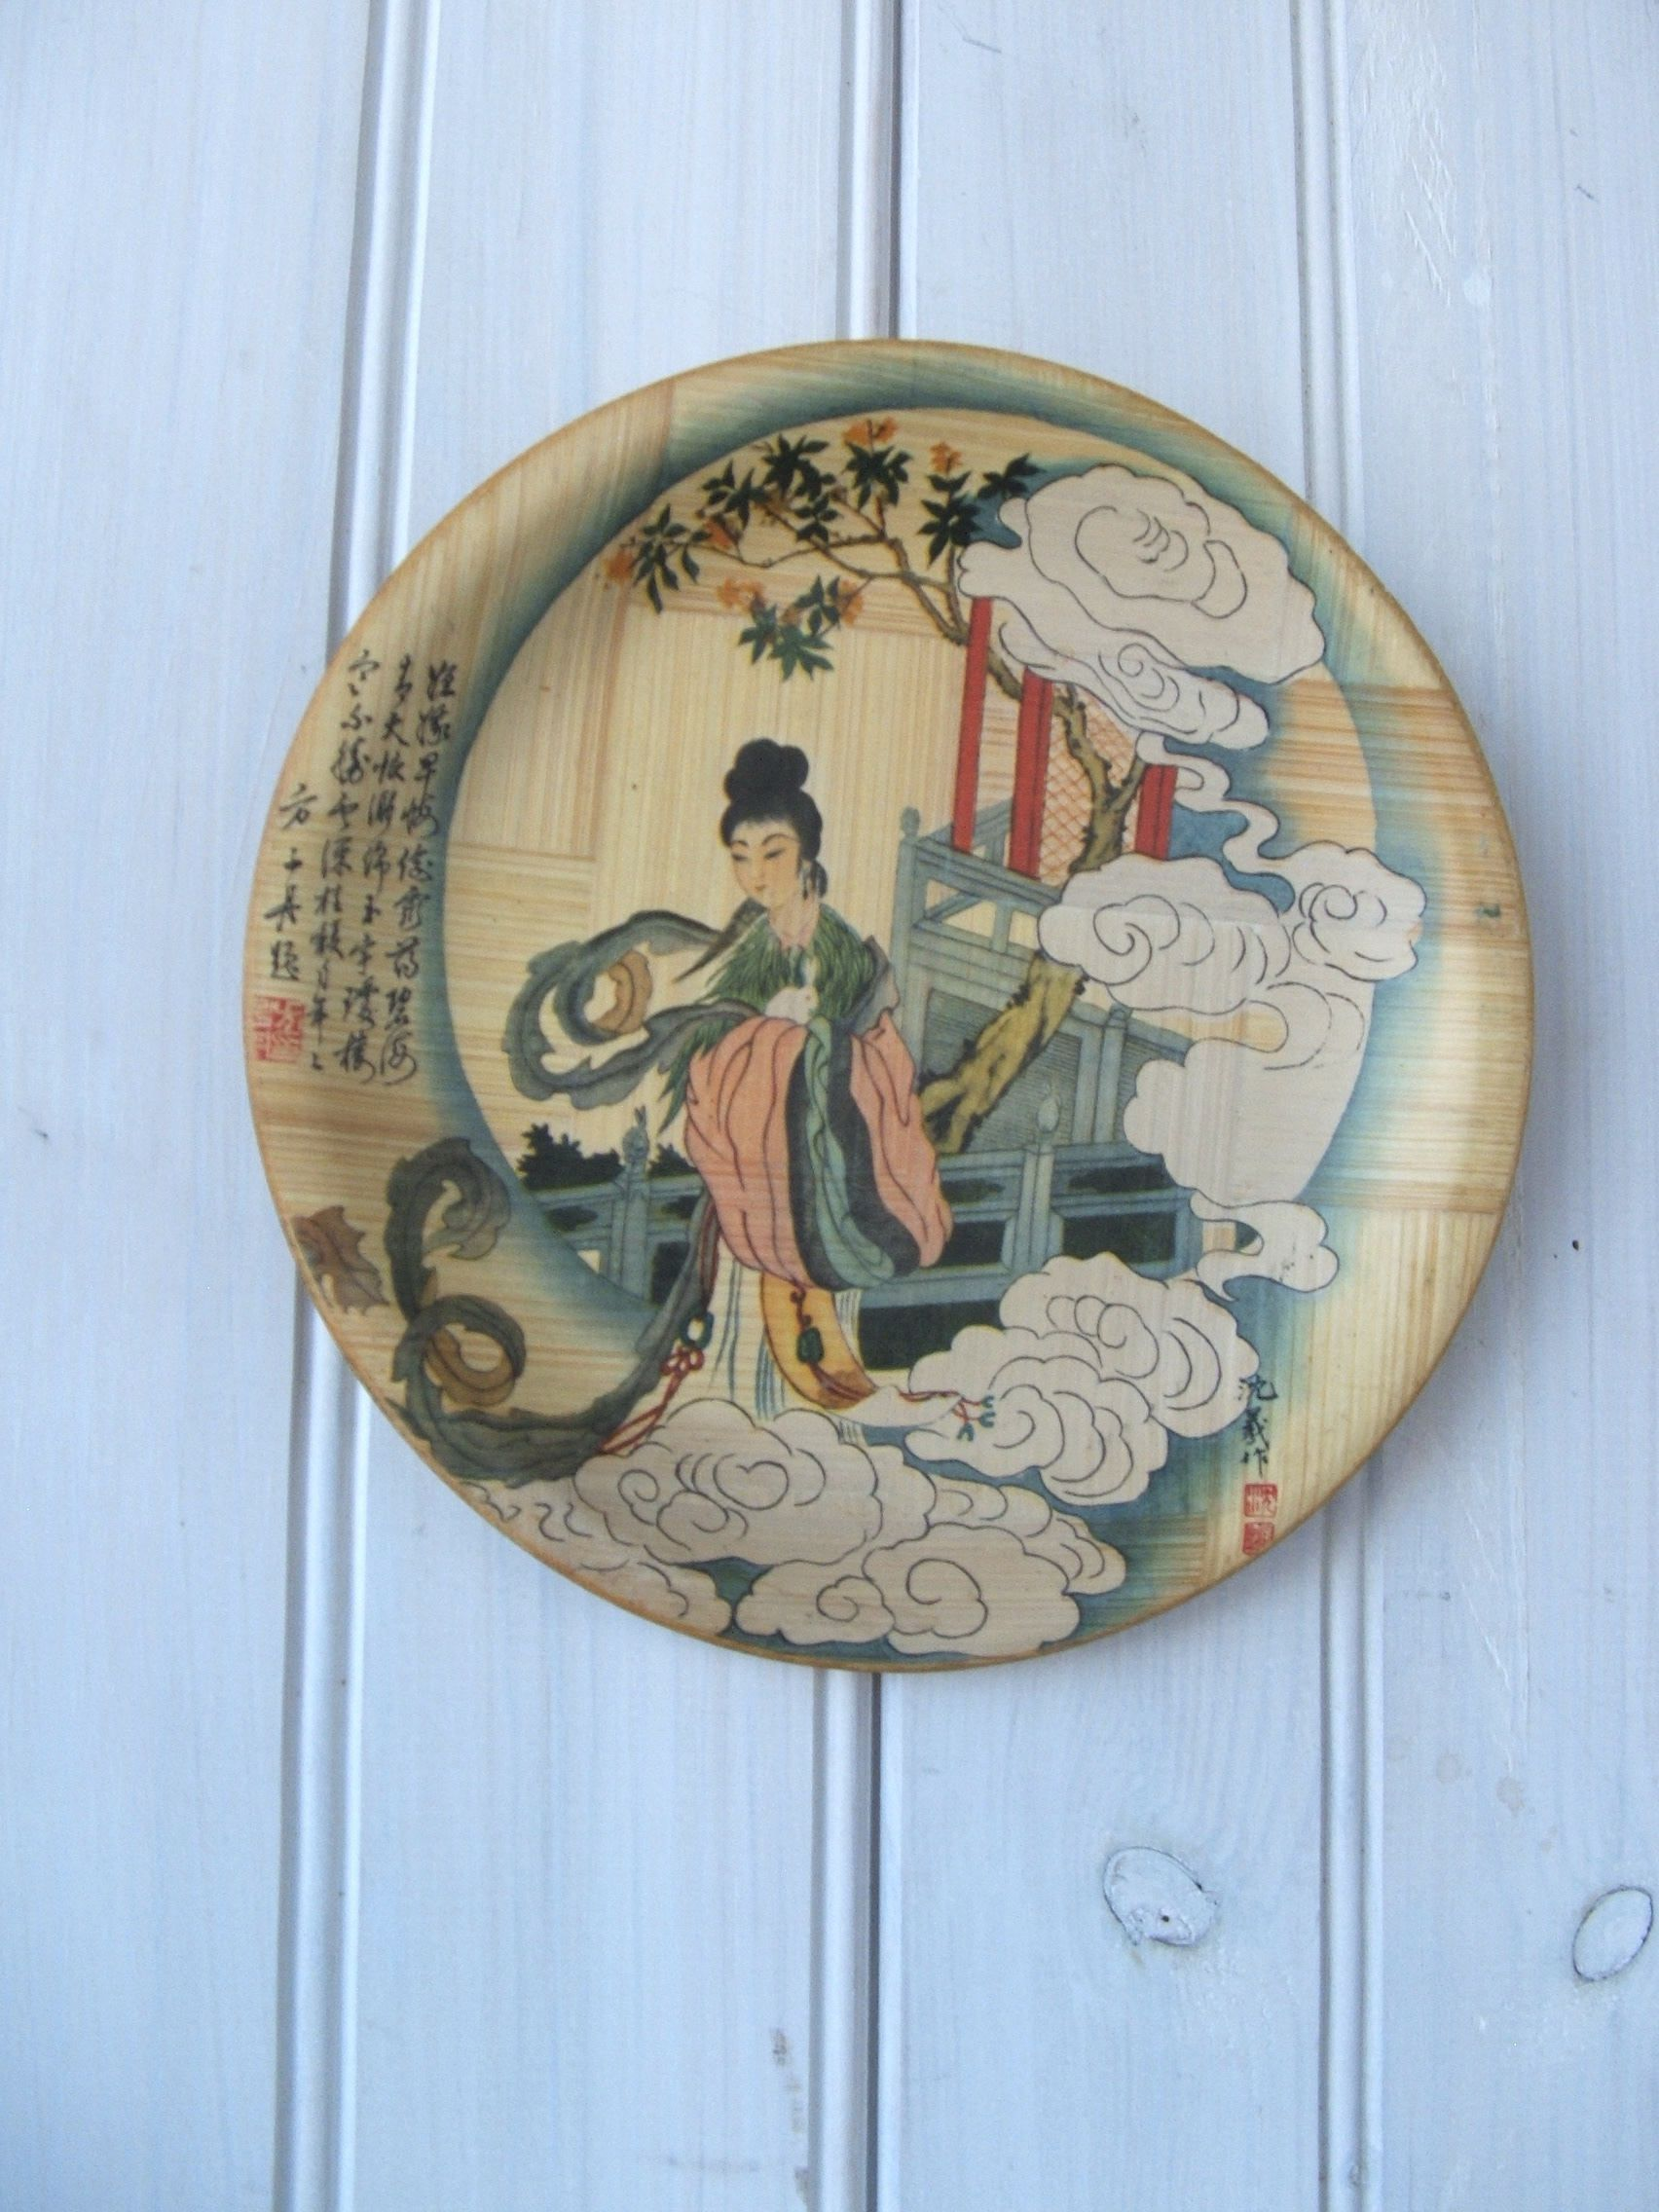 Vintage Taiwan Bamboo Decorative Plate from Bamboo Plate Specialist by lookonmytreasures on Etsy & Vintage Taiwan Bamboo Decorative Plate from Bamboo Plate Specialist ...